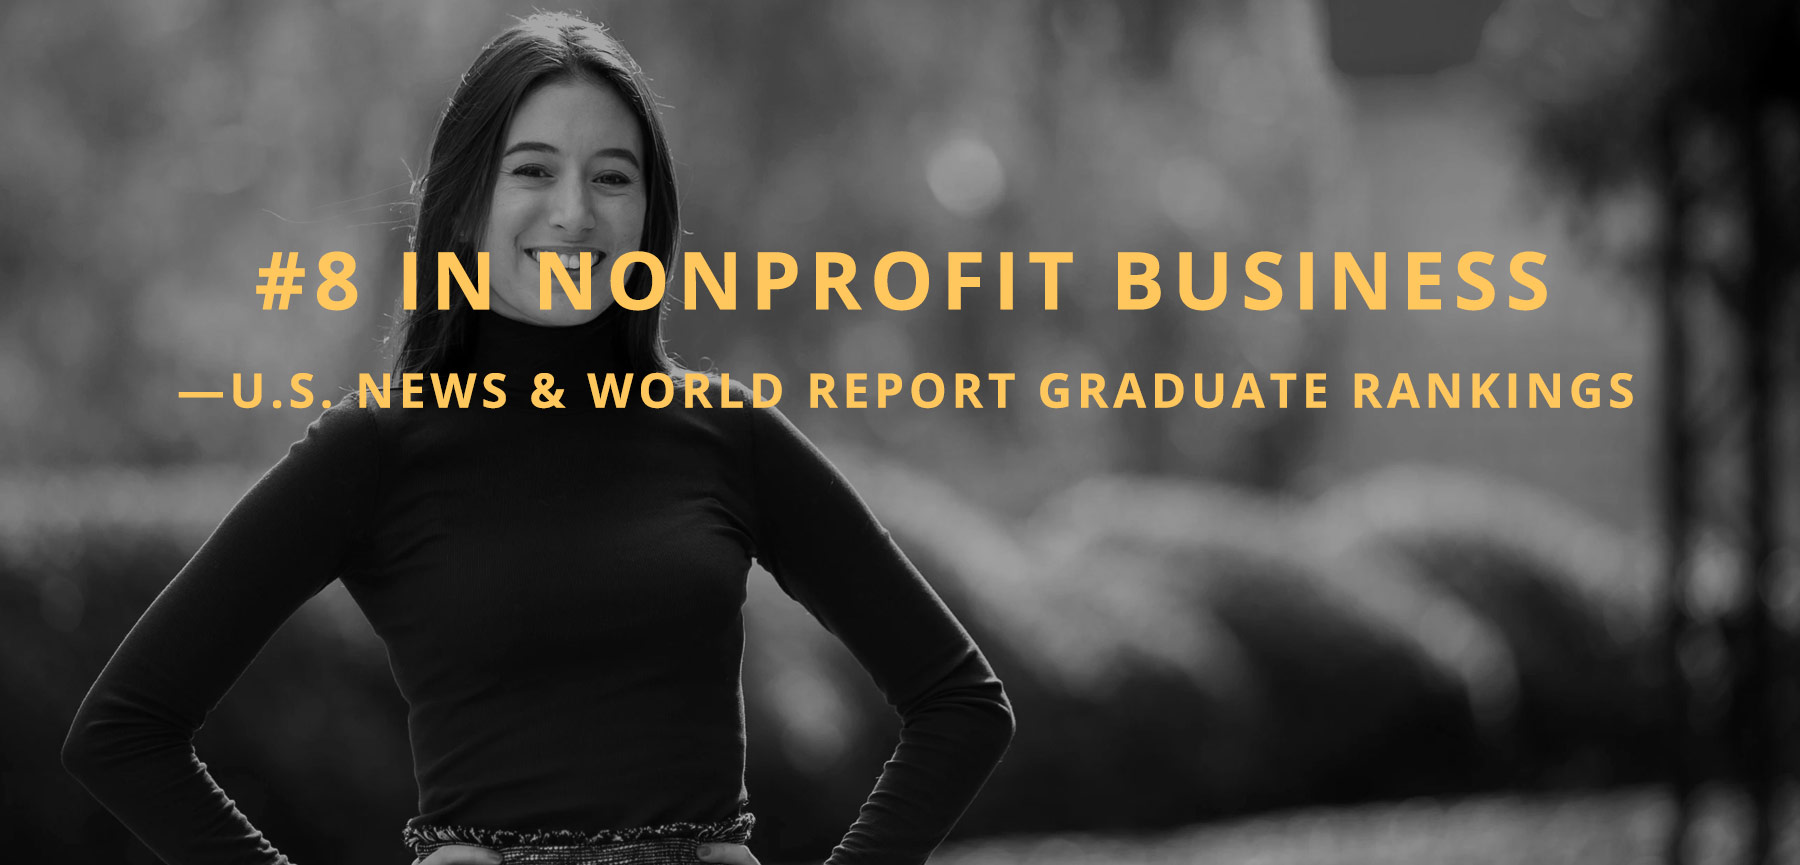 #8 in nonprofit business